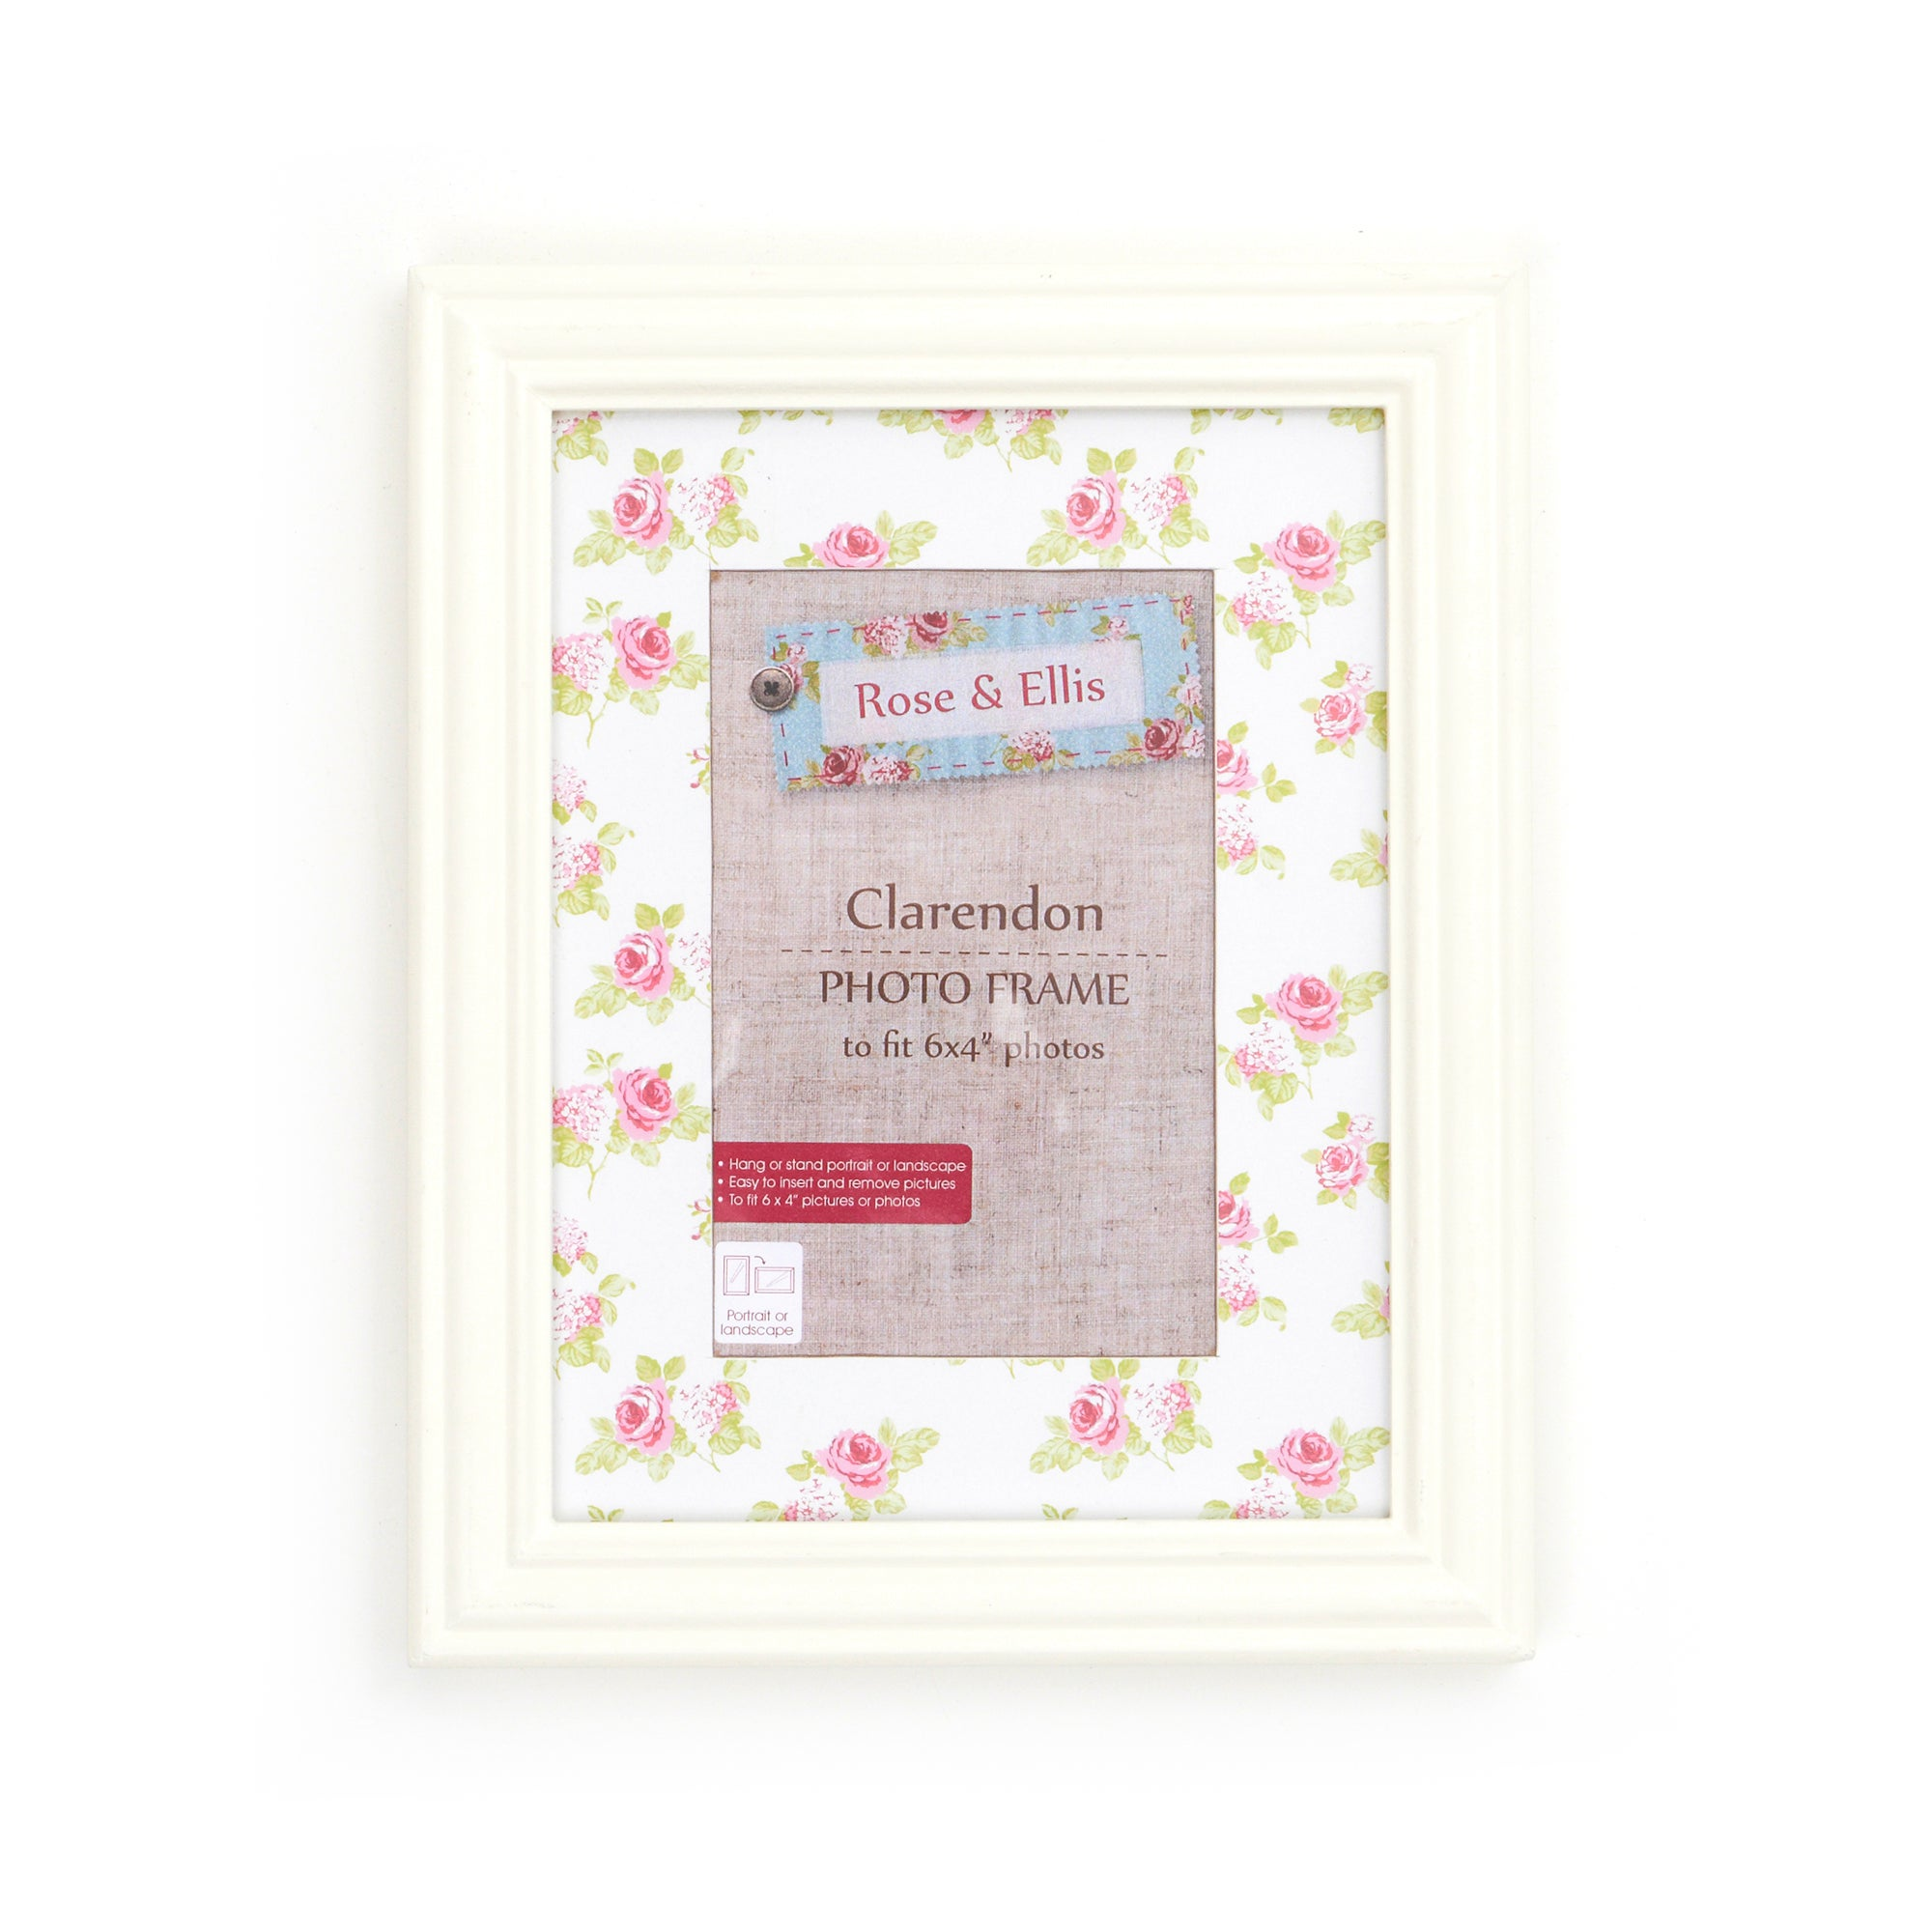 Rose and Ellis Clarendon Collection Small Photo Frame